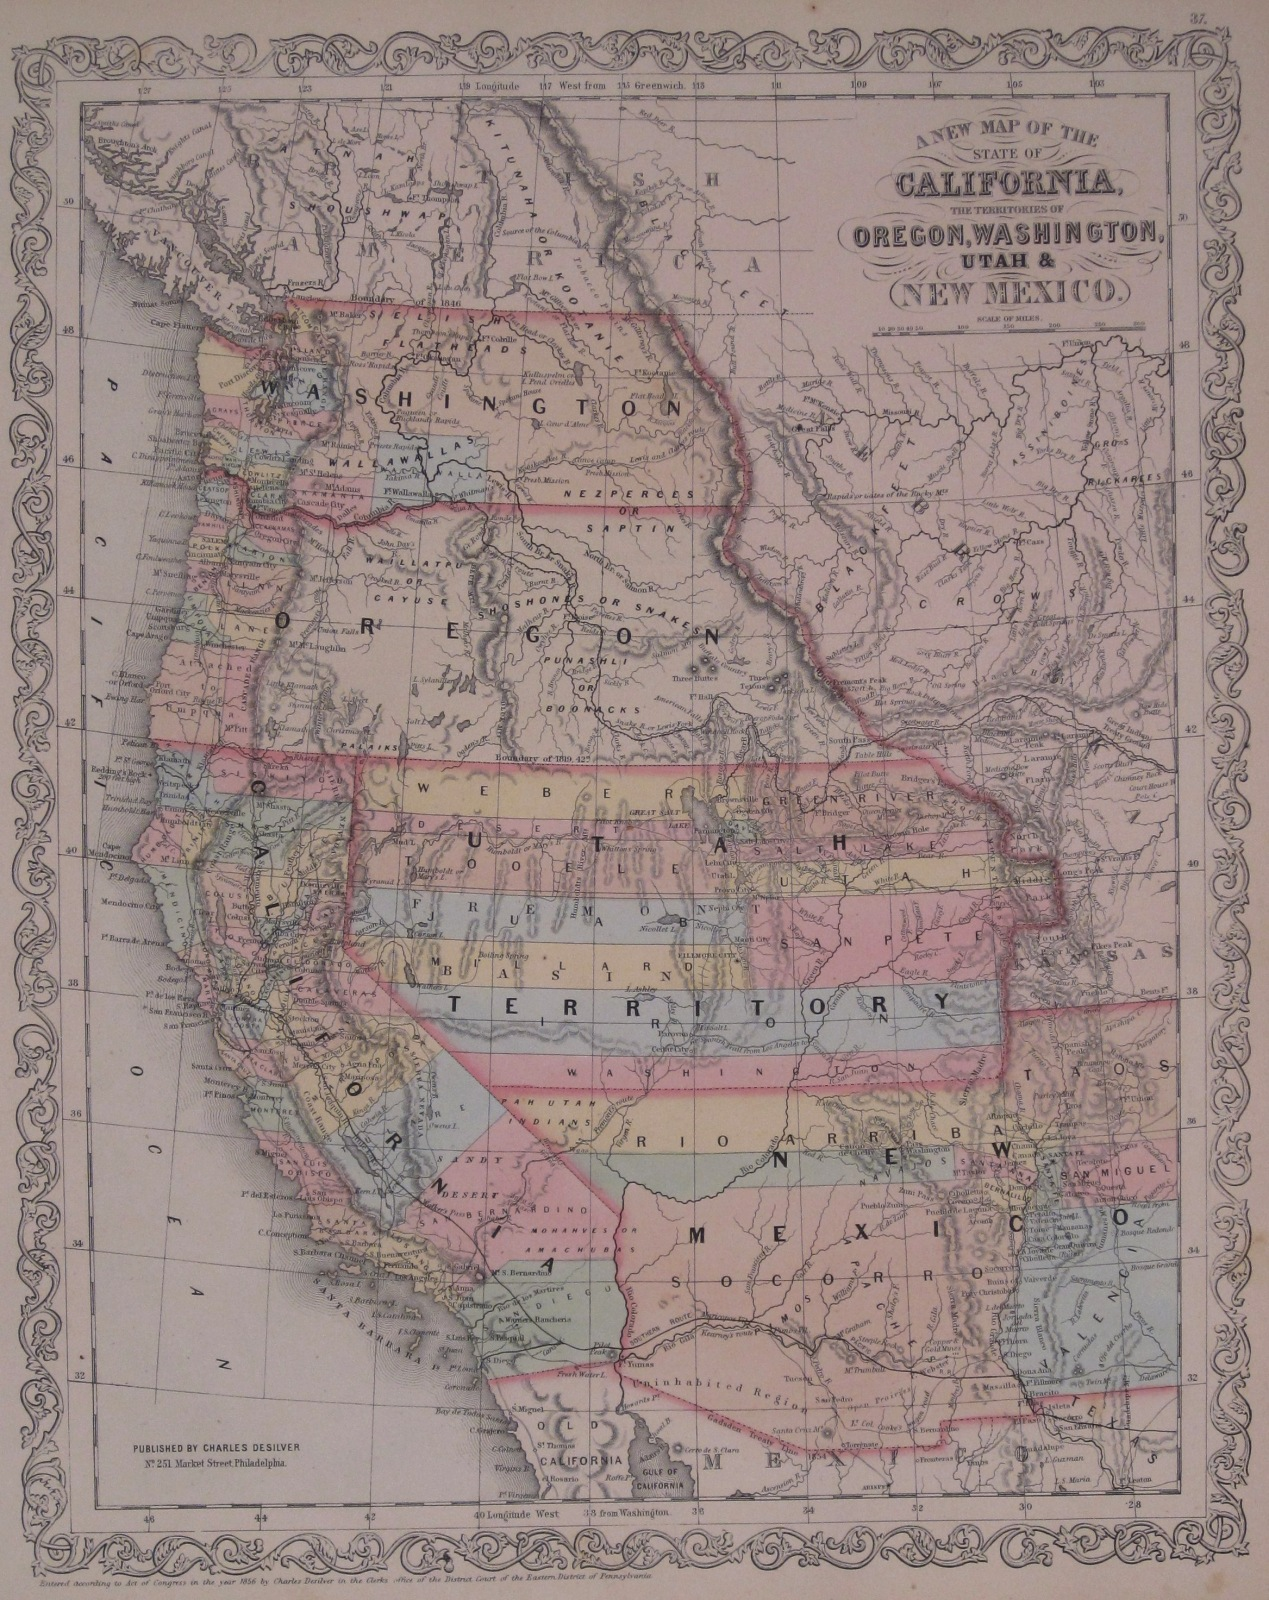 Washington County Maps and Charts 1858 Map of Oregon  Washington  California  Utah  and New Mexico      1859 Map  of the States of California  the Territories of